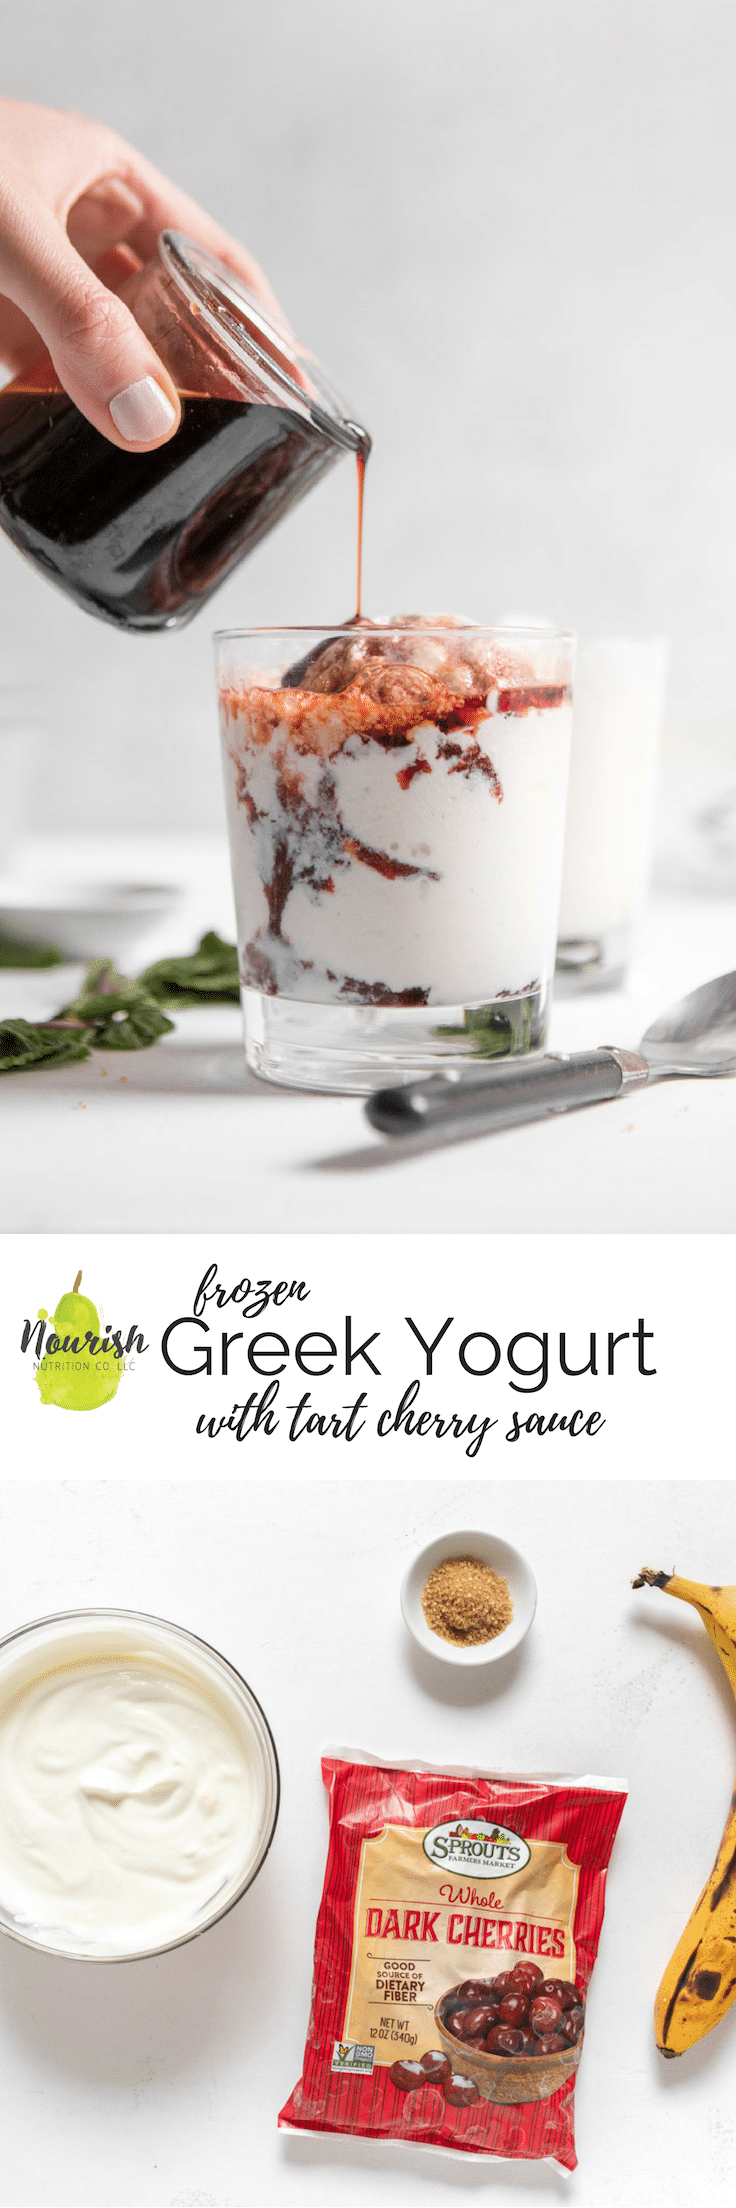 frozen greek yogurt with tart cherry sauce in a cup and ingredients with text overlay